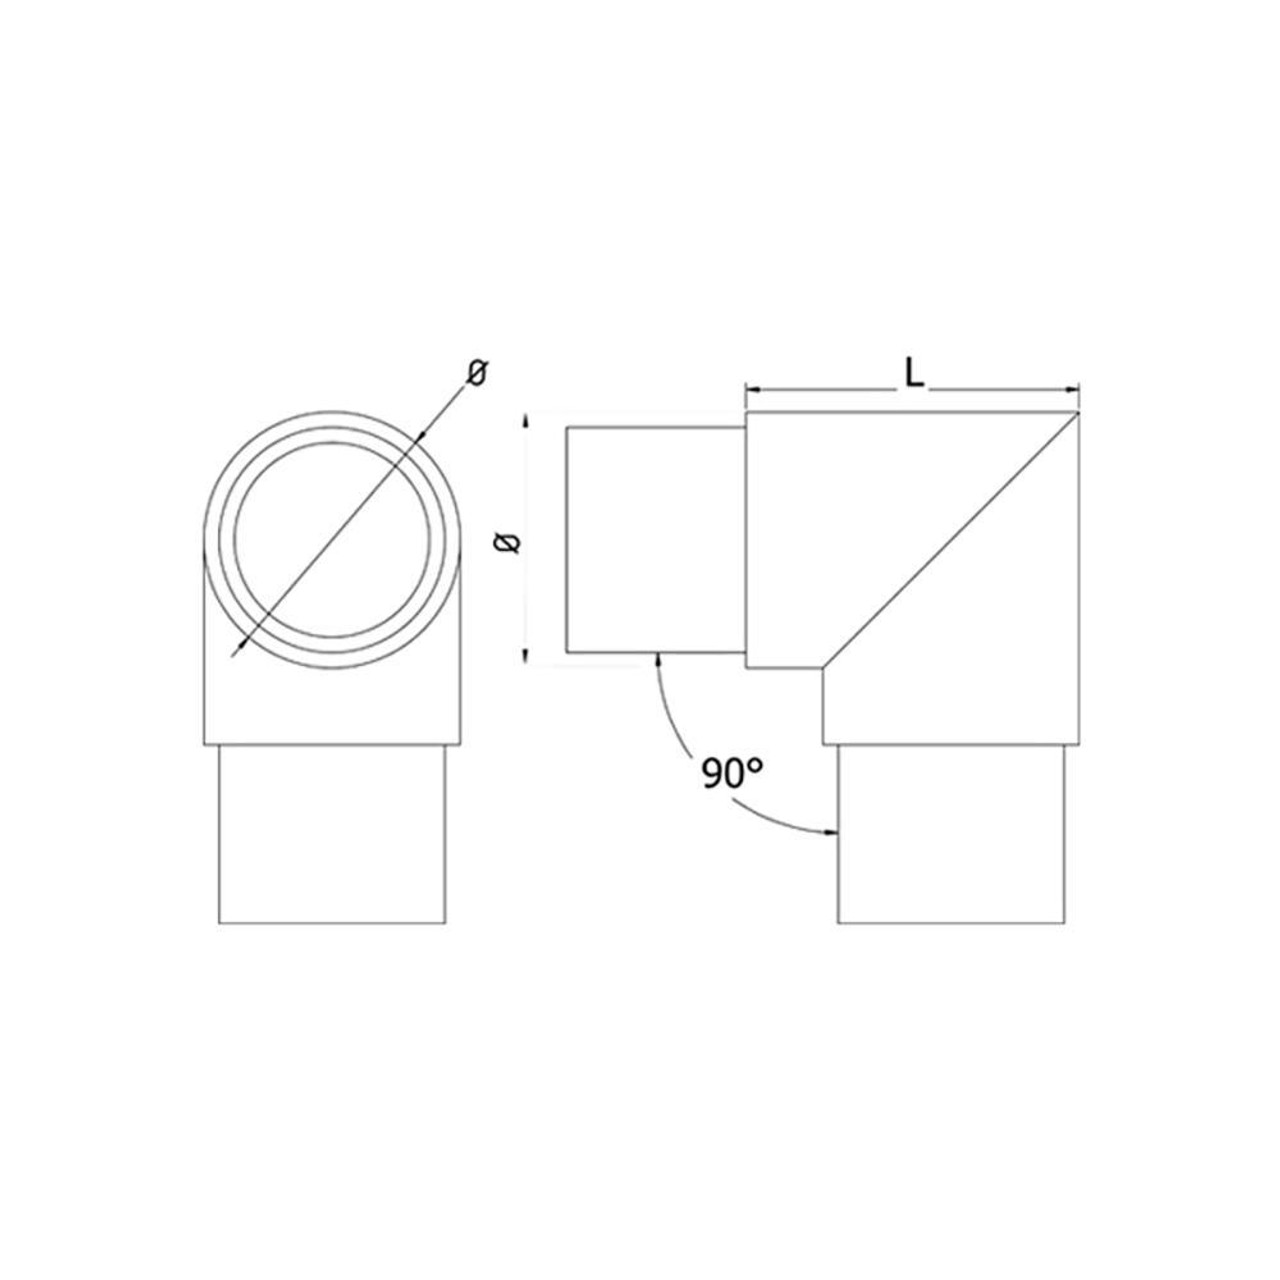 90 Degree Elbow for 42.4 mm Round Handrail, CADD